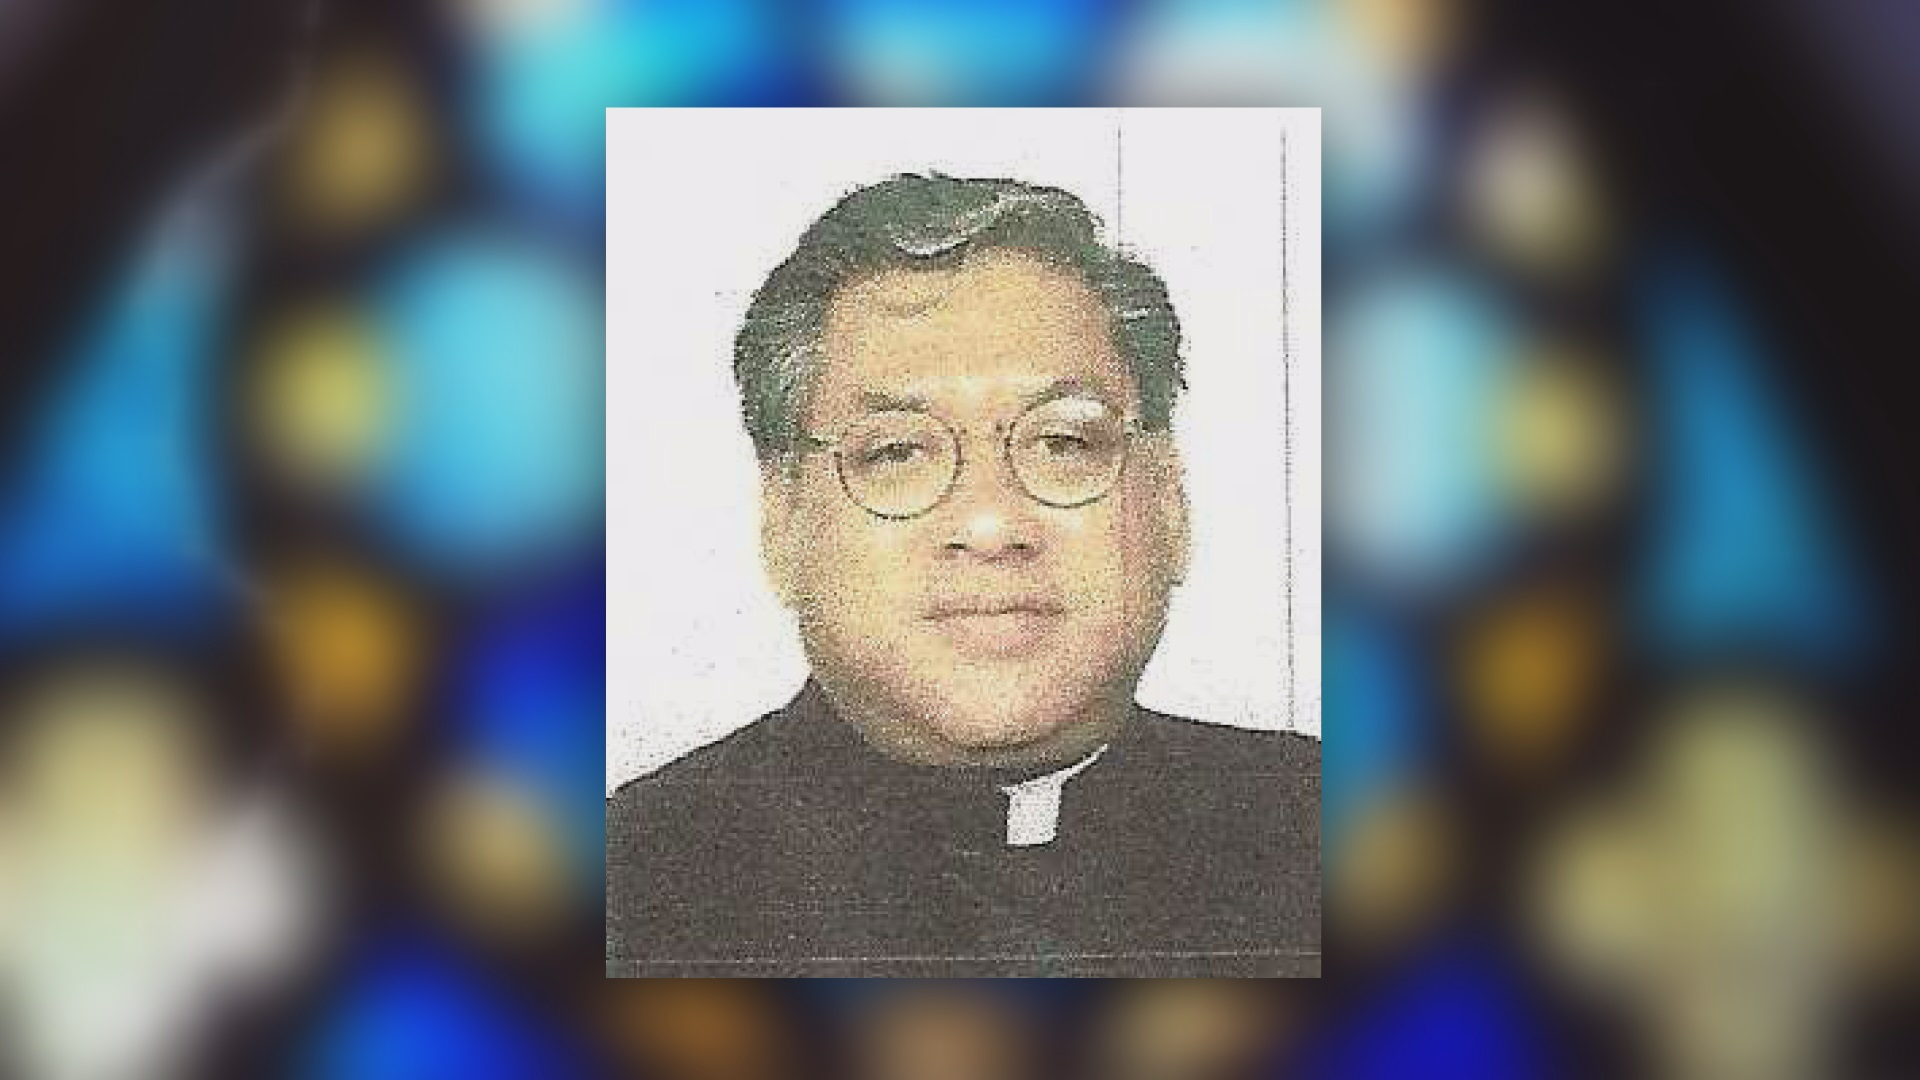 Former priest admits to fathering prostitute's child, being aware of complaints